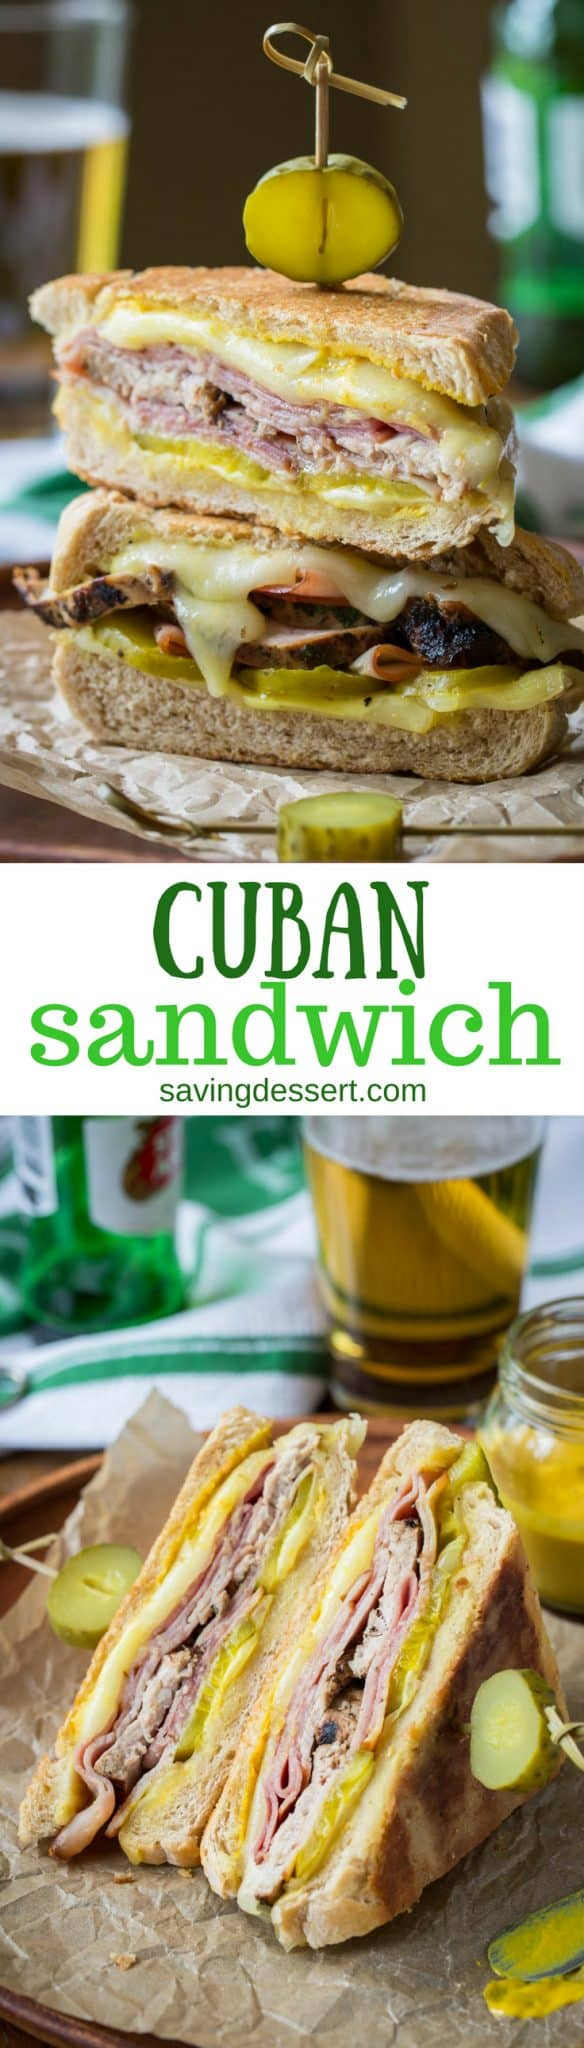 The Cuban Sandwich (Cubano) ~ a hearty and delicious combination of sweet ham, juicy tender pork, melted Swiss cheese, dill pickles with a nice bite from a slathering of yellow mustard. www.savingdessert.com